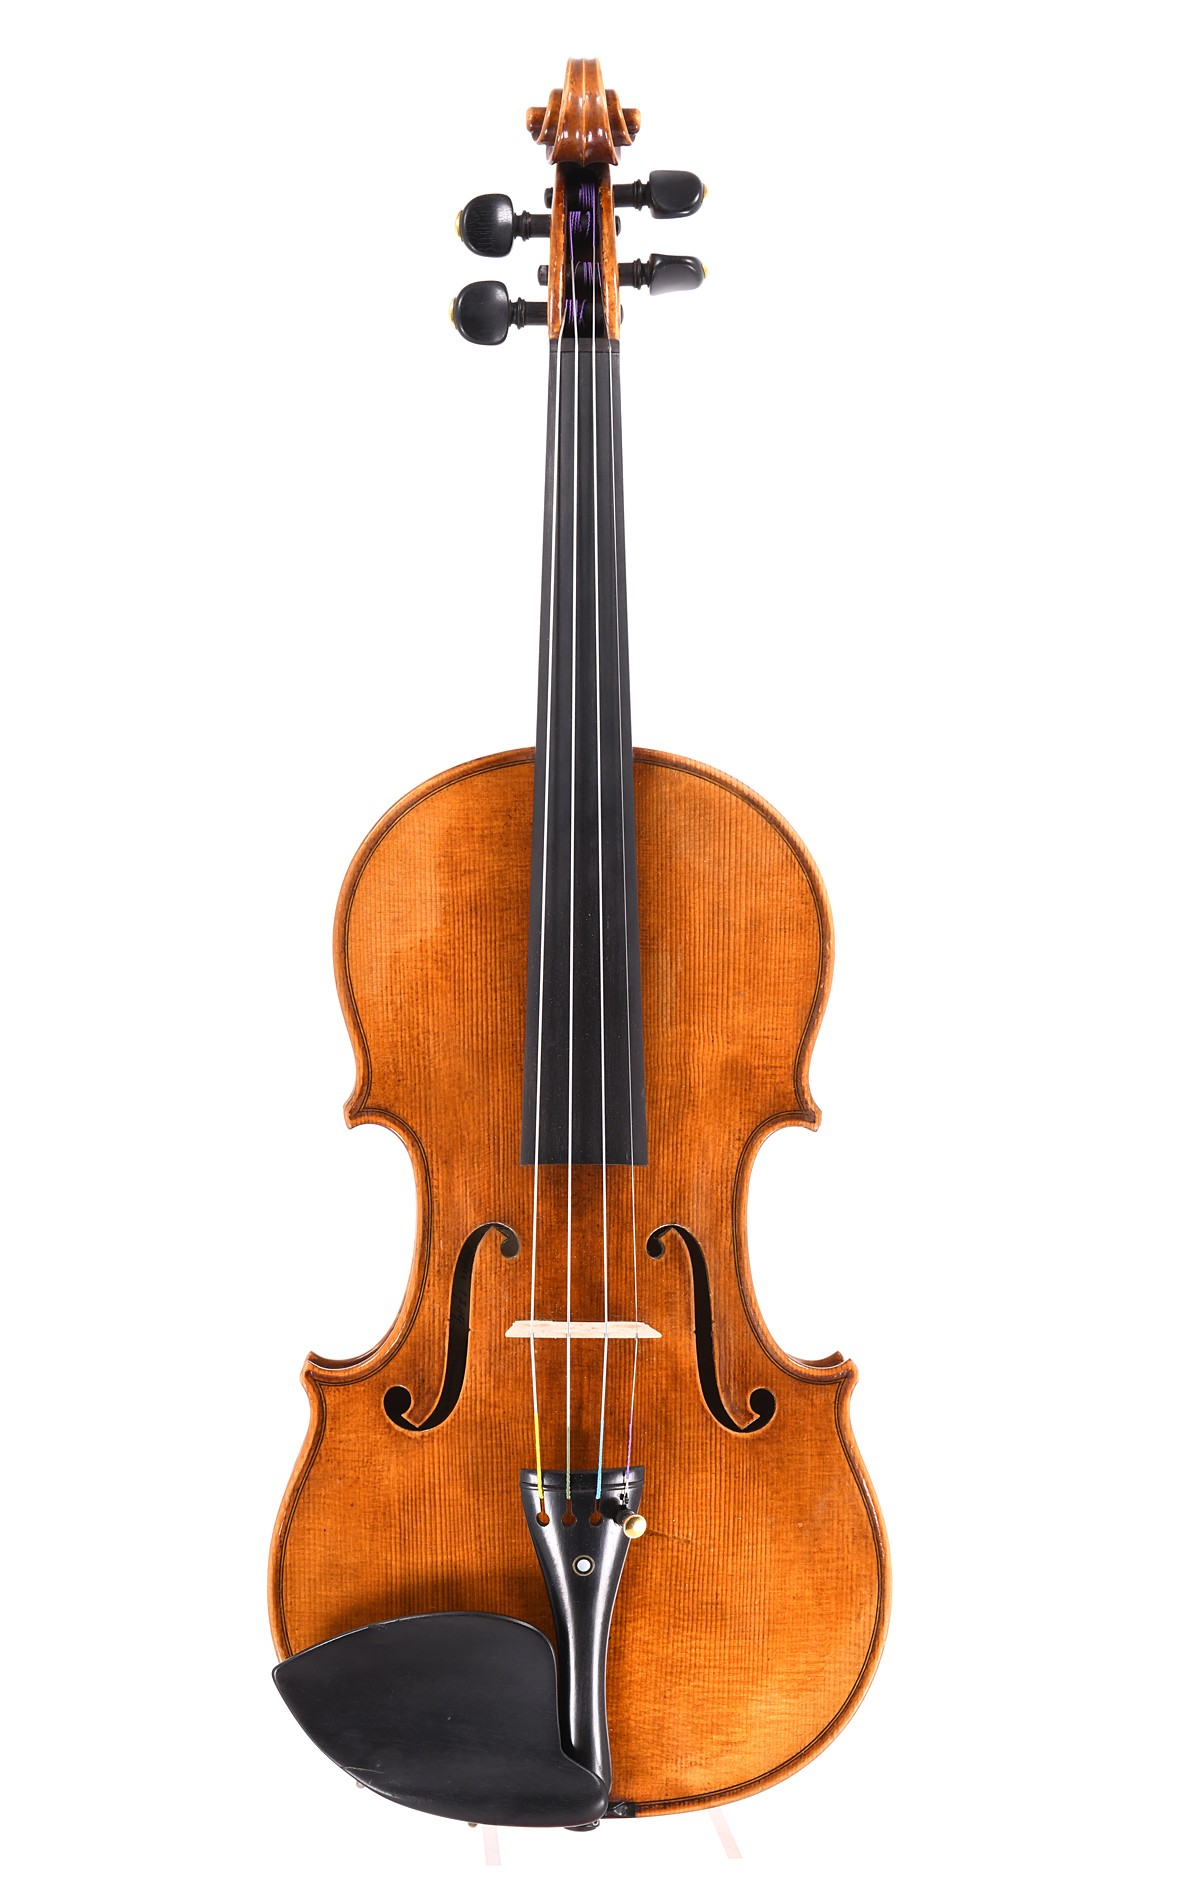 Mittenwald violin by Karl Sandner, 1968